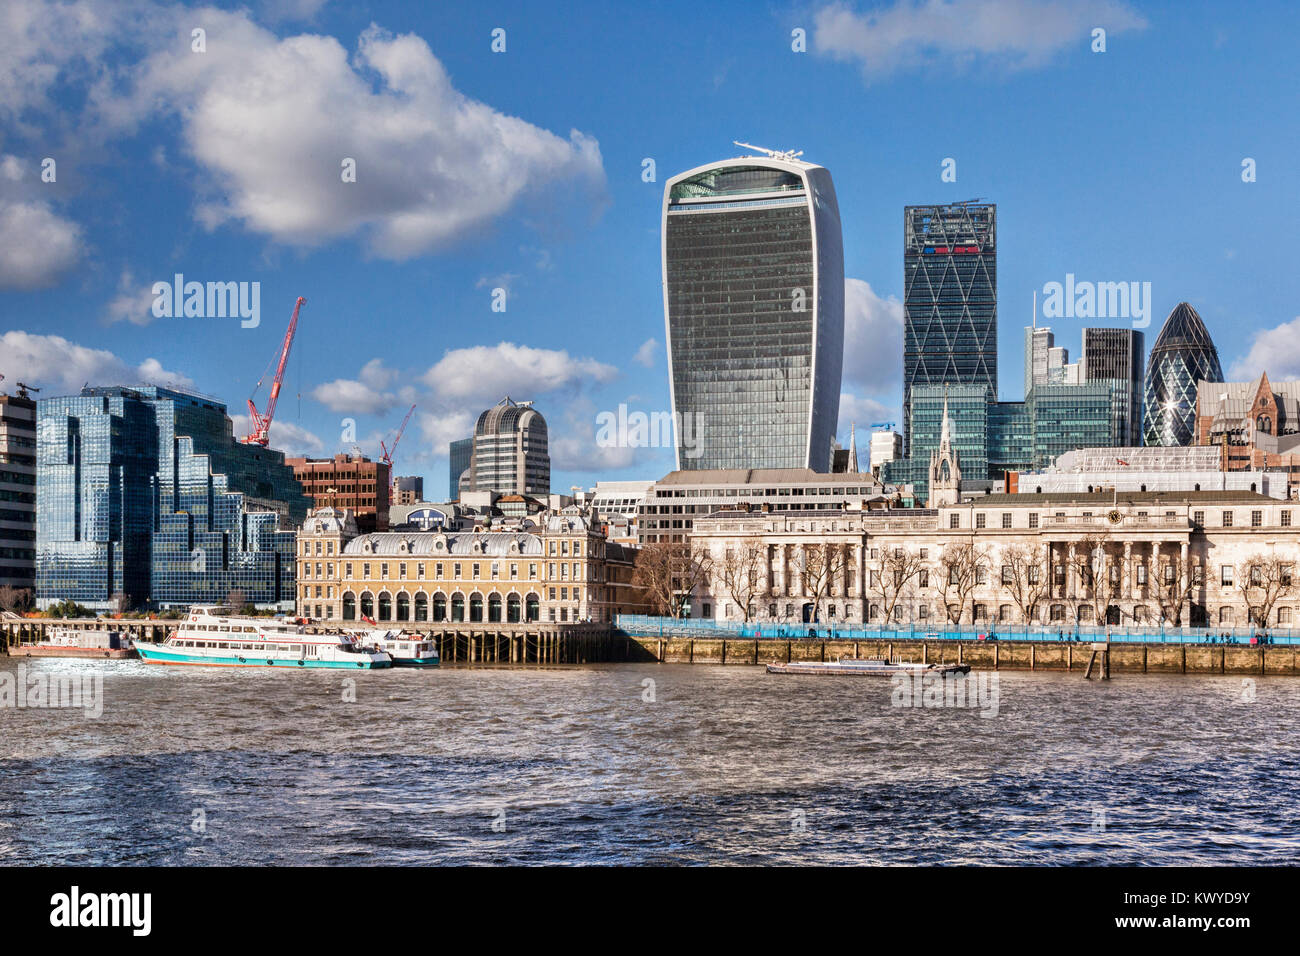 London skyline with the Walkie Talkie, the Cheese Grater, the Gherkin and the River Thames. - Stock Image